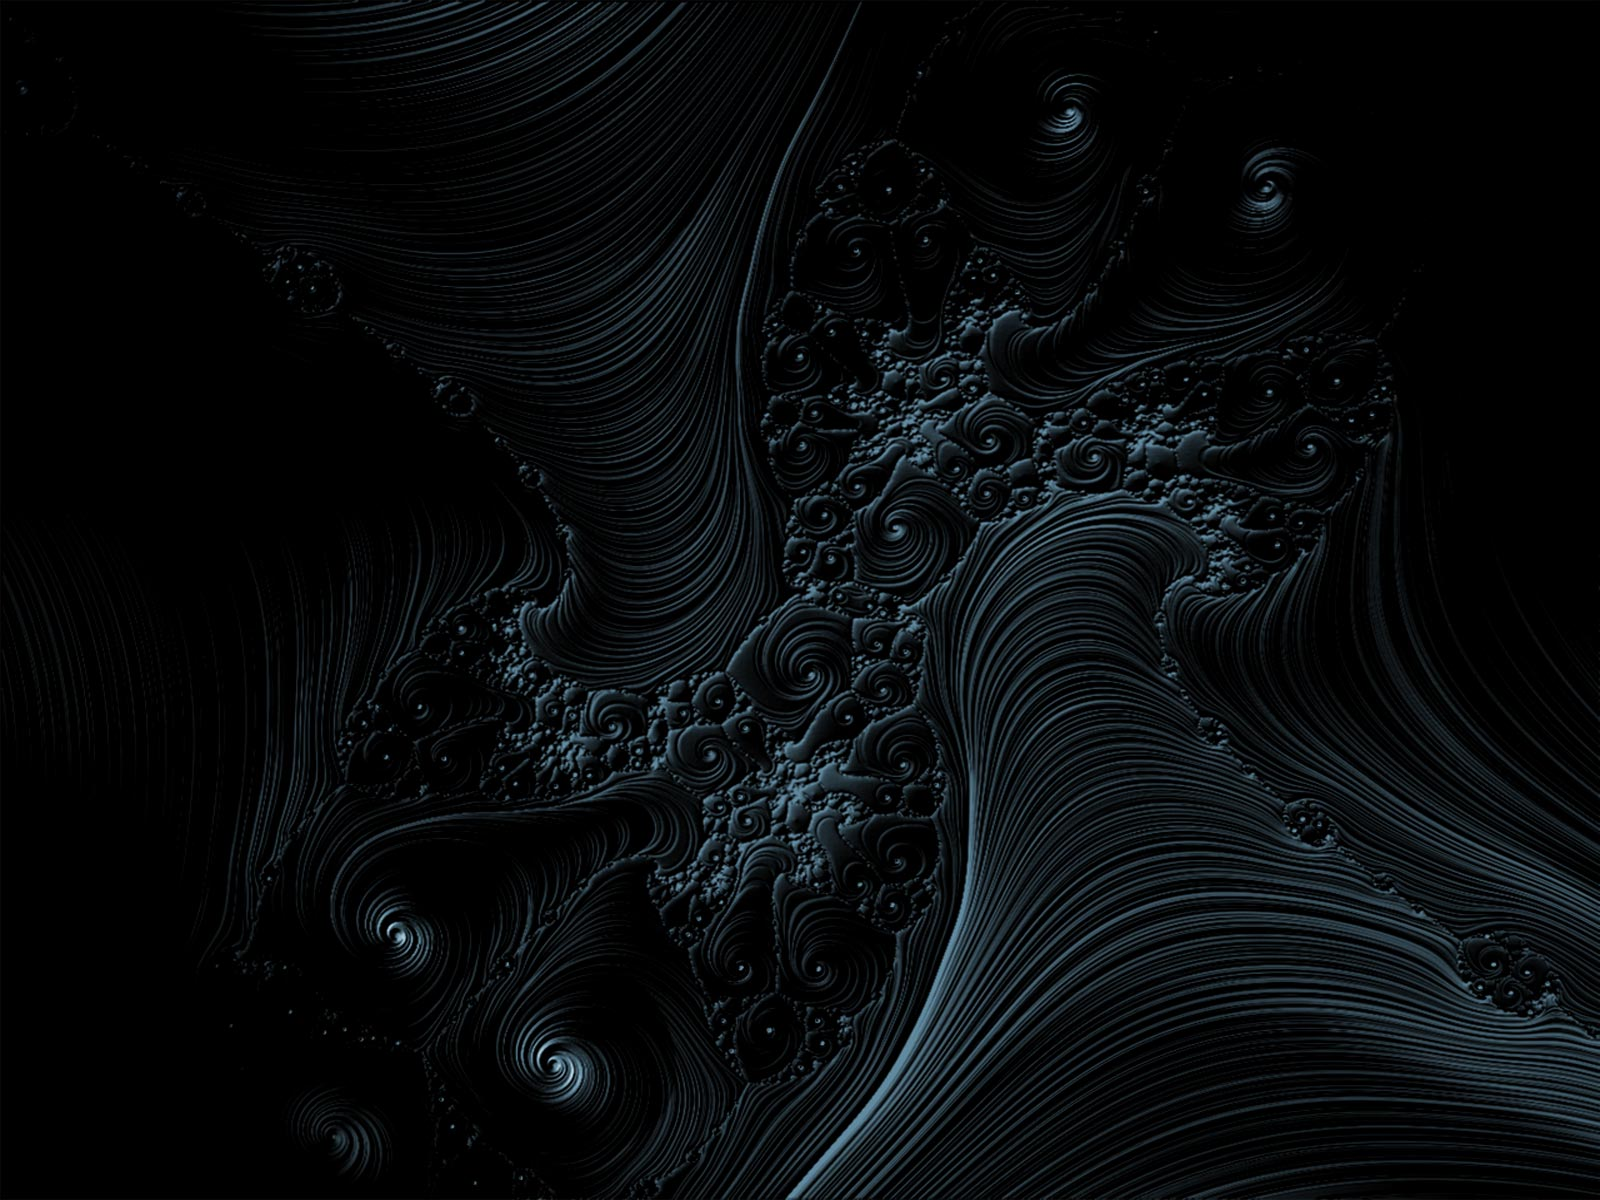 beautiful wallpaper awesome black - photo #3